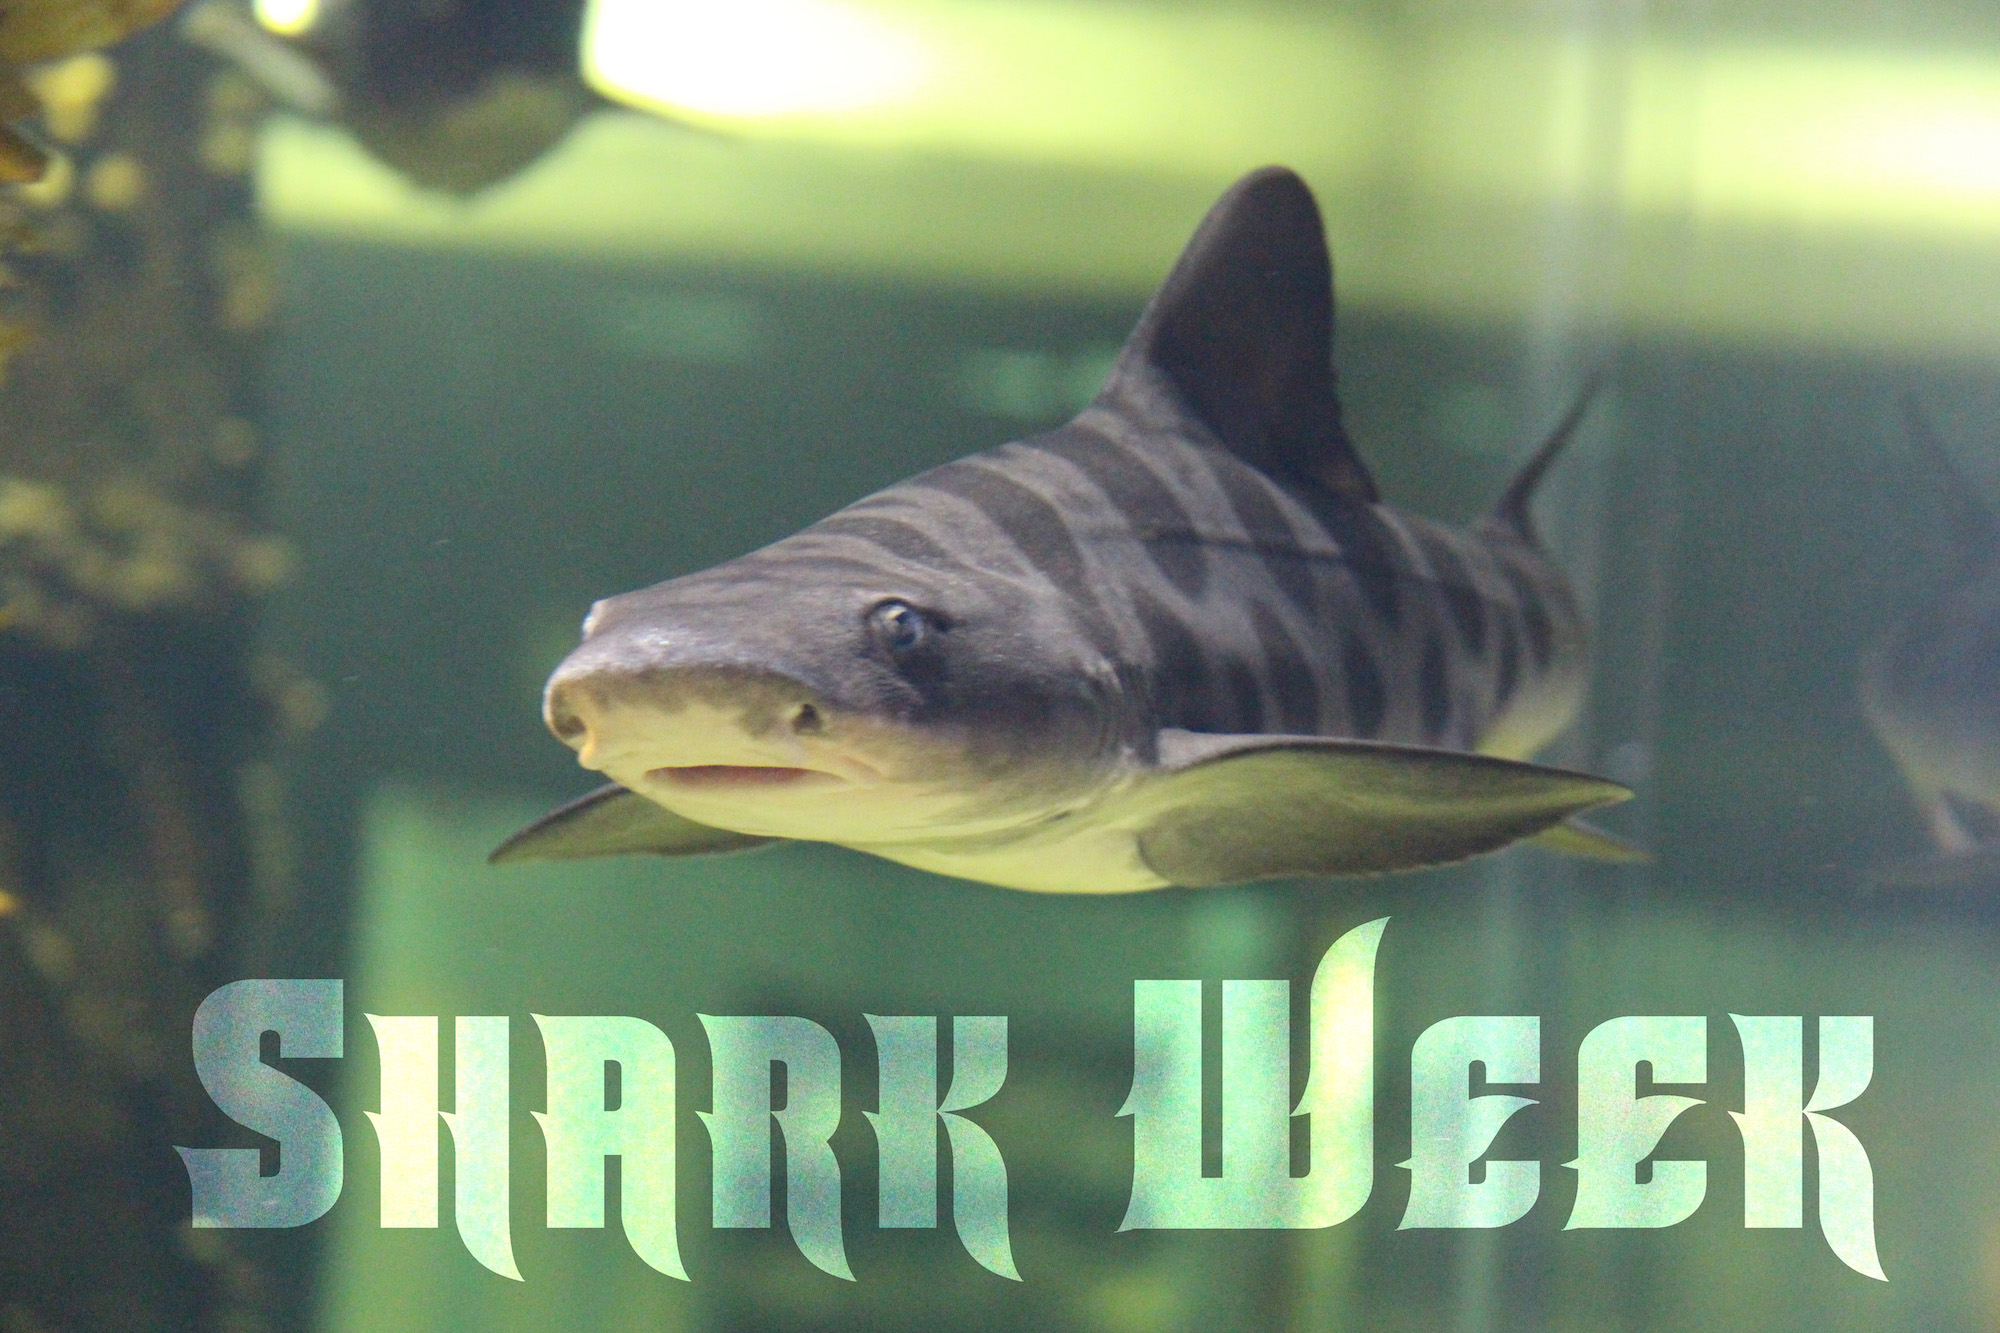 Shark Week at the Aquarium!